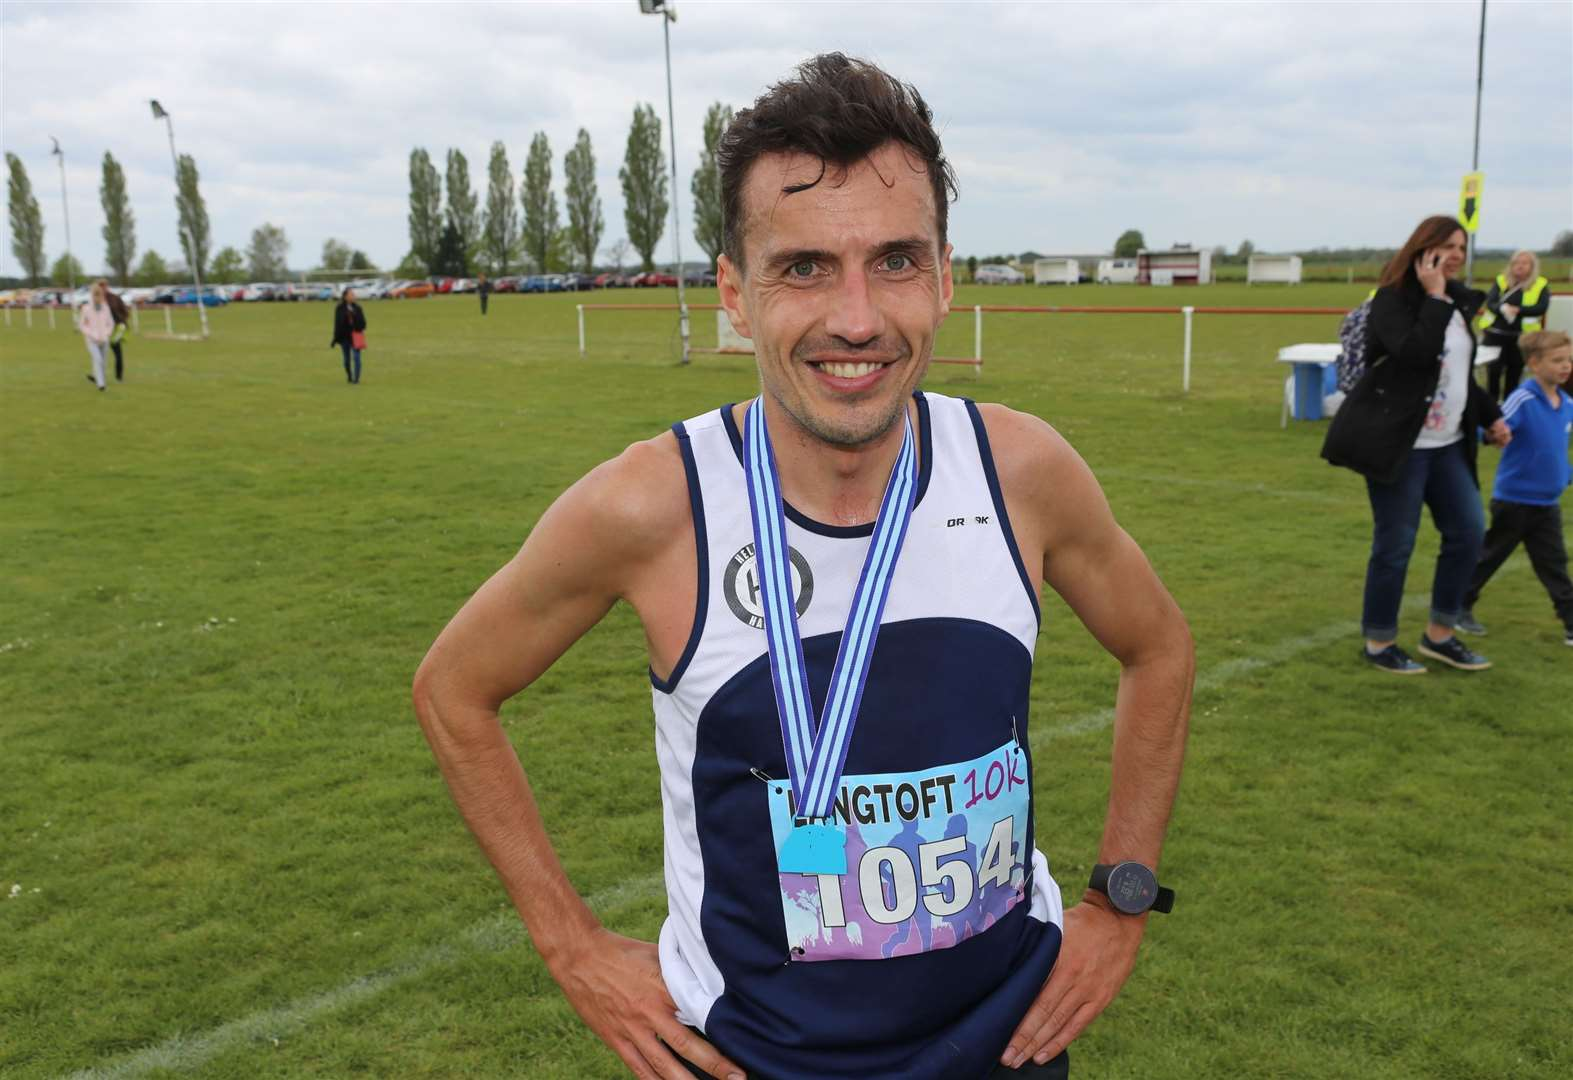 RUNNING: Scott smashes 25-year course record with devastating display in Langtoft 10k